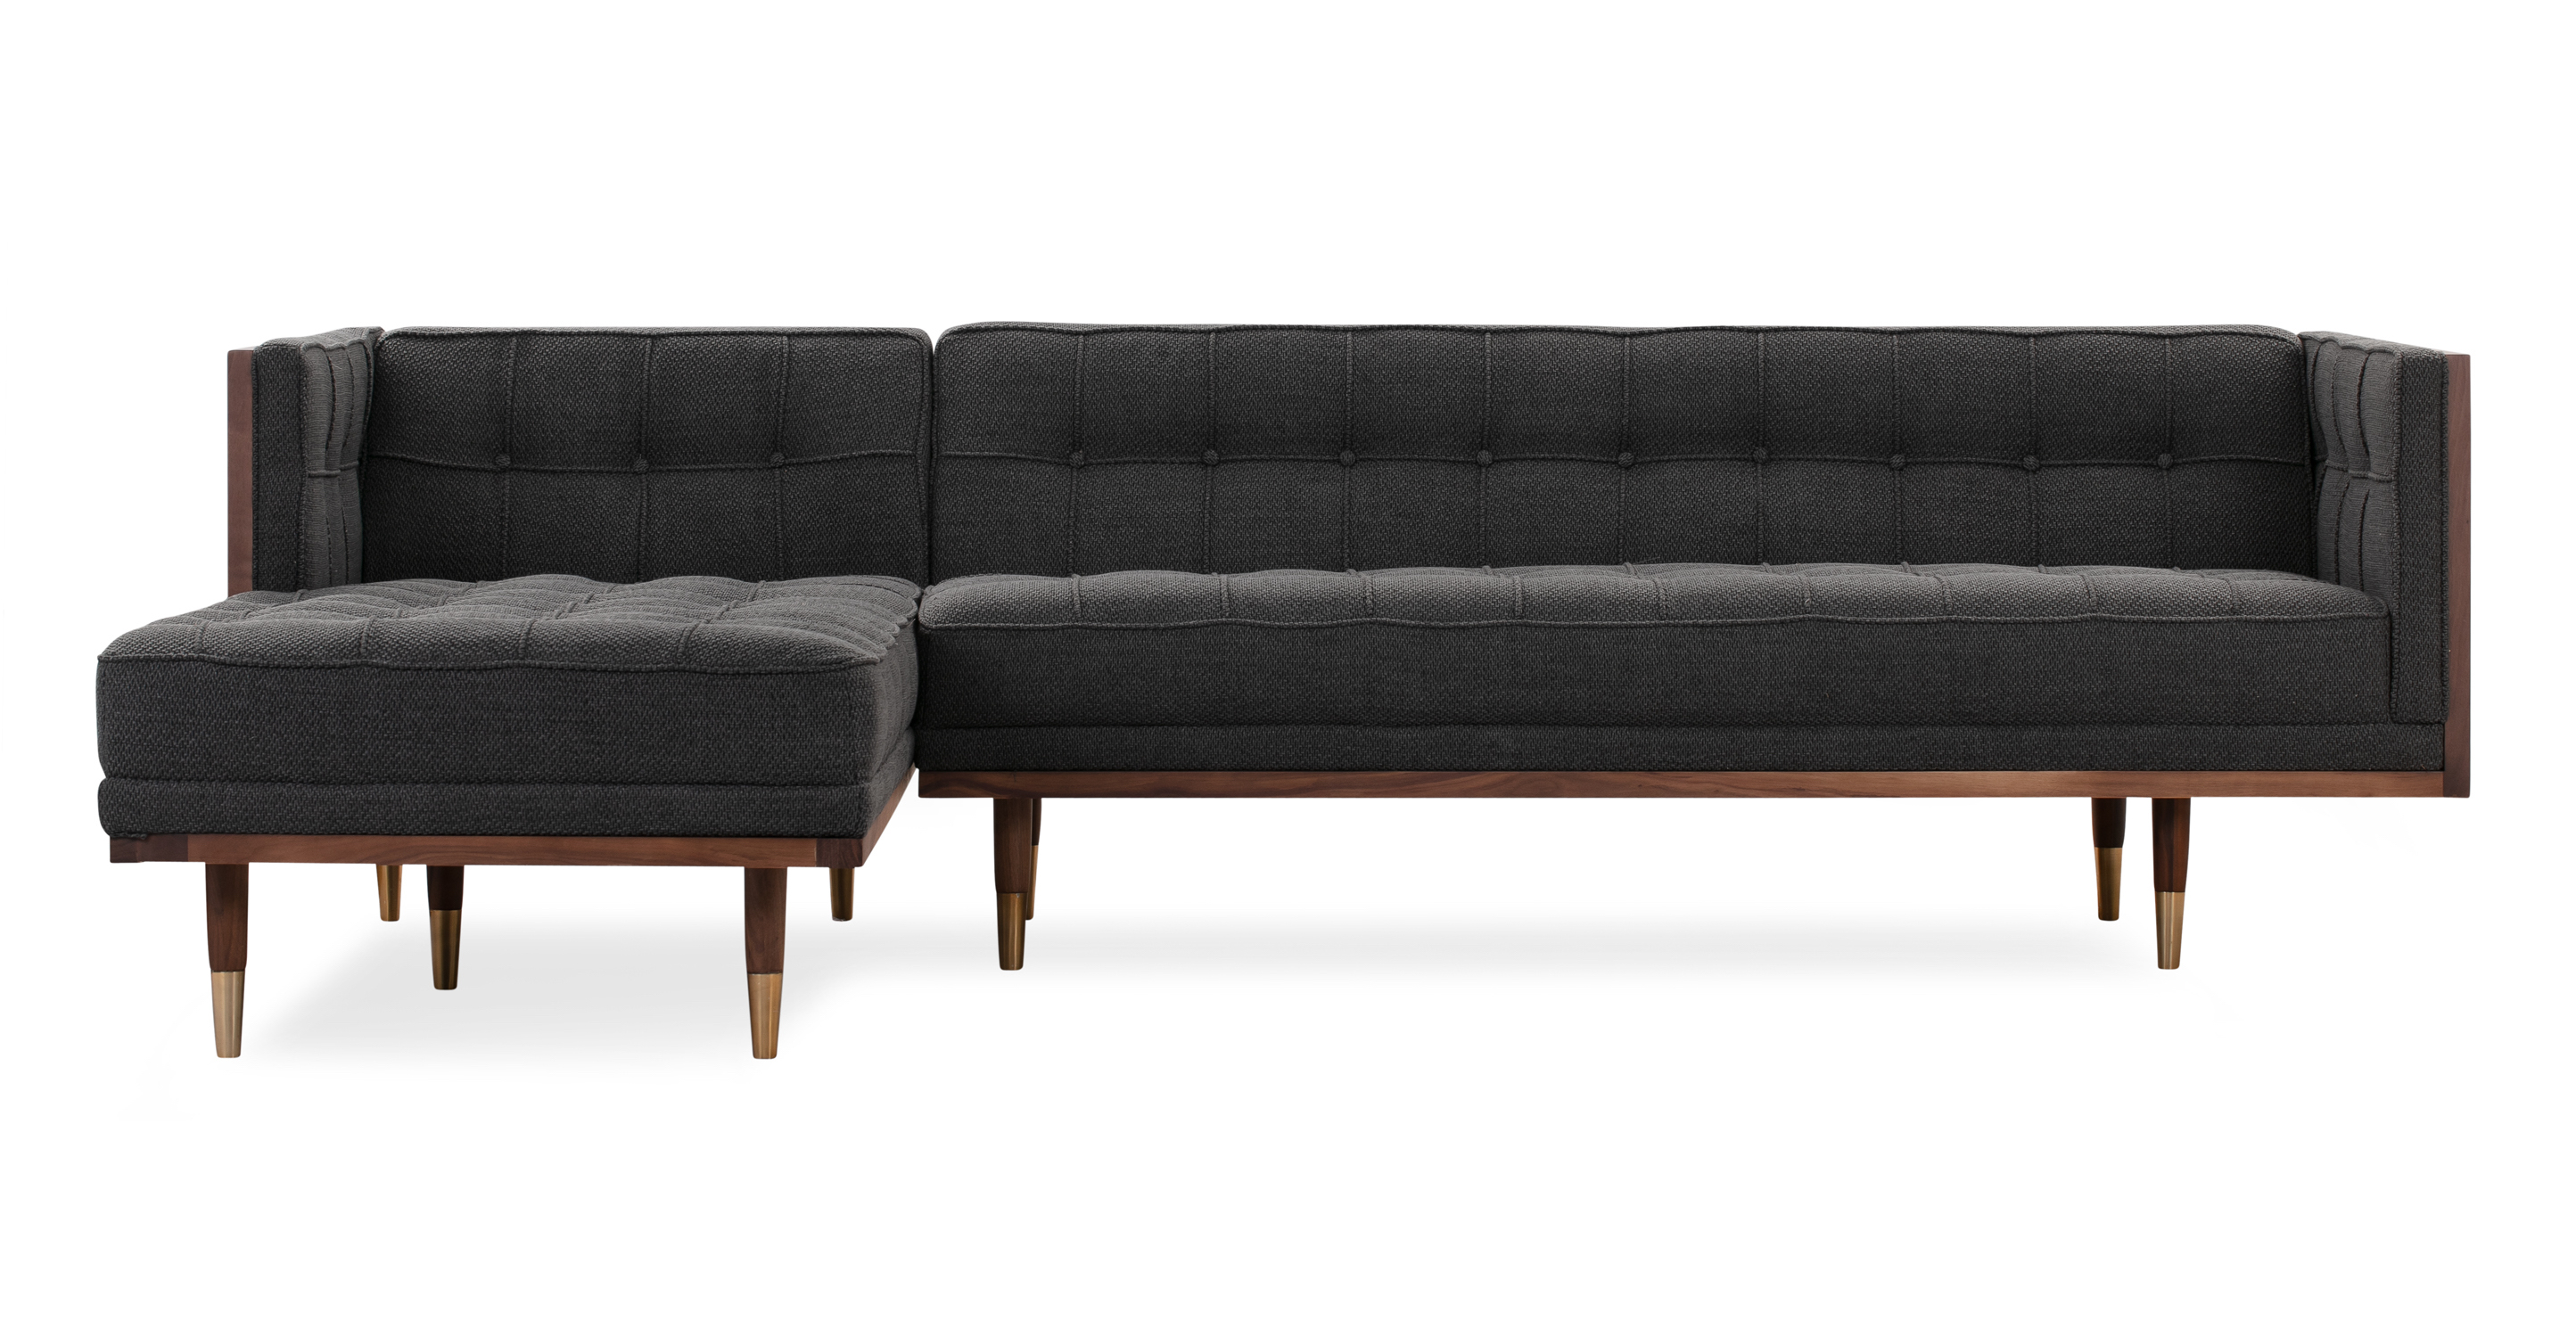 "Woodrow Box 100"" Fabric Sofa Sectional Left, Walnut/Niemeyer"